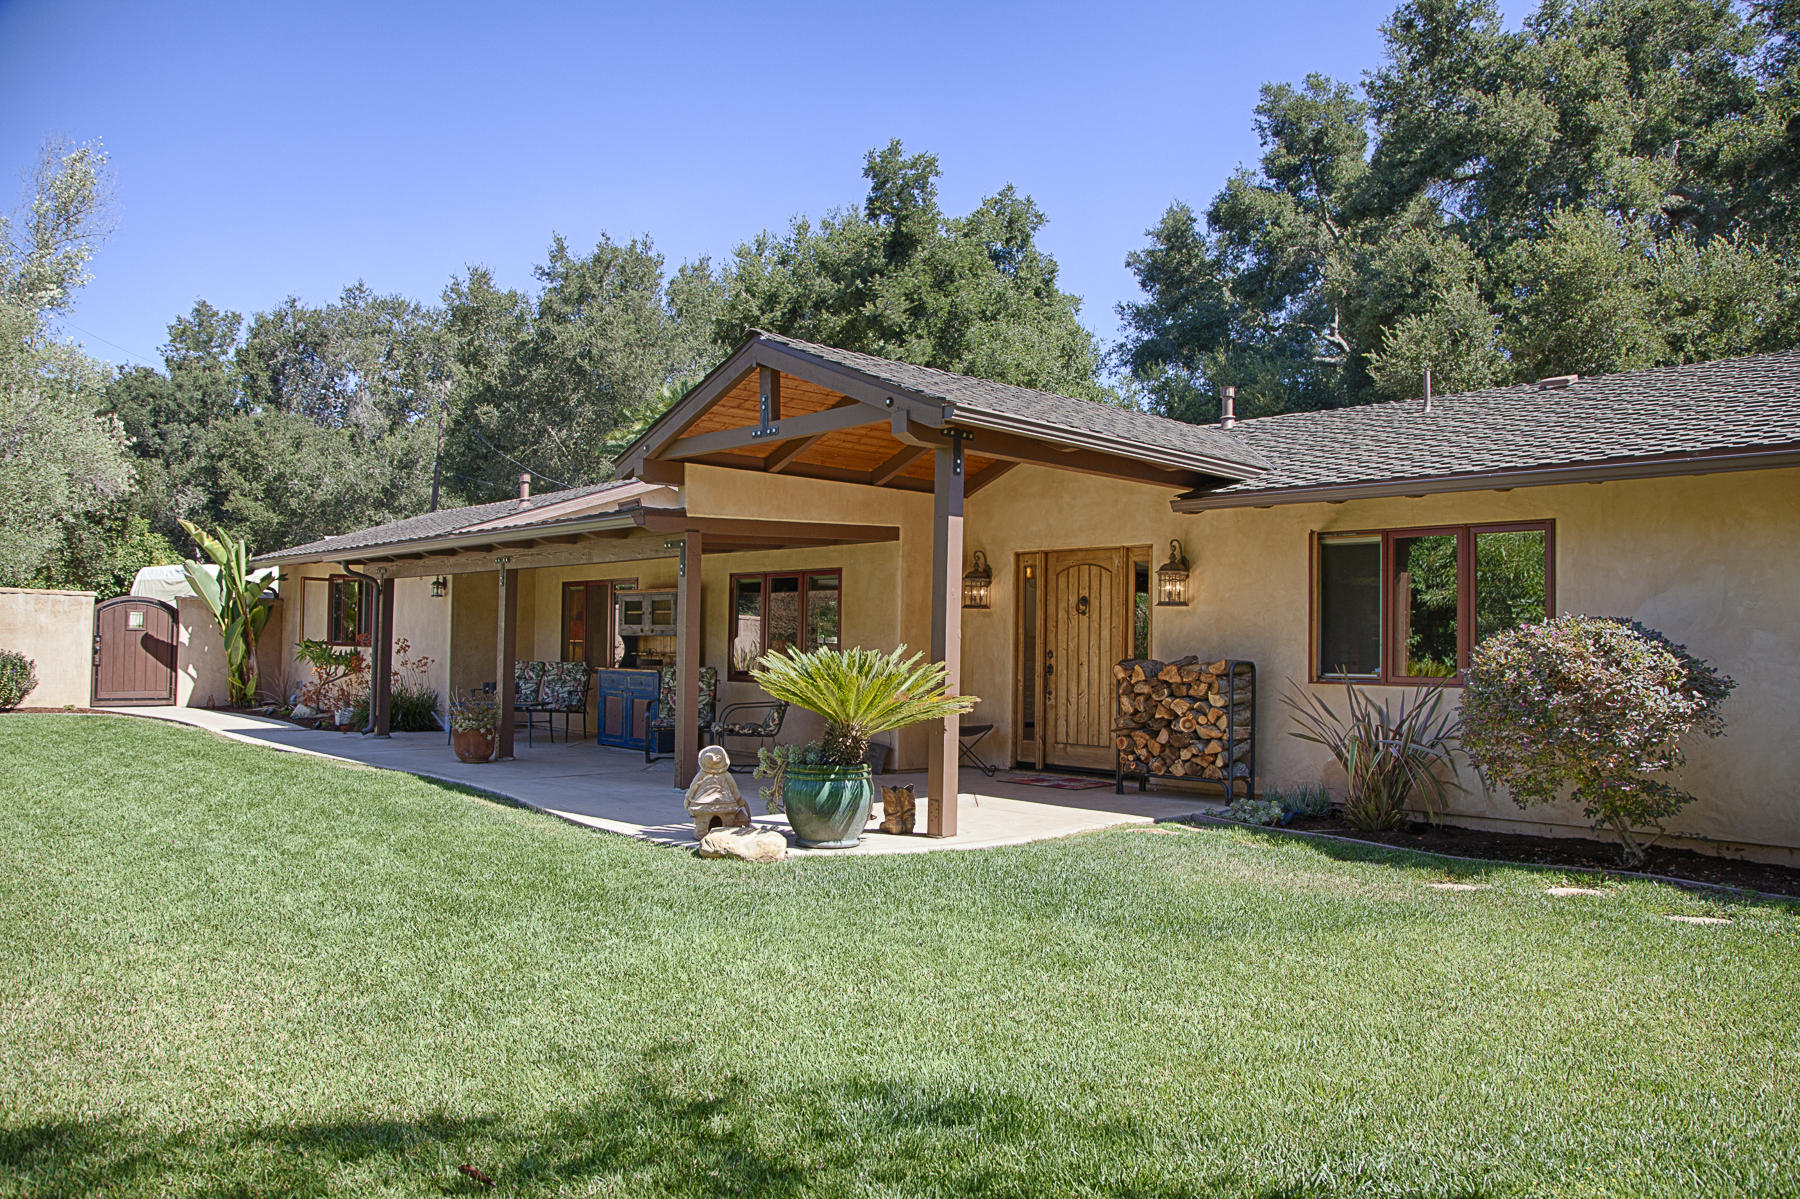 Property photo for 890 Glen Annie Rd Goleta, California 93117 - 16-483